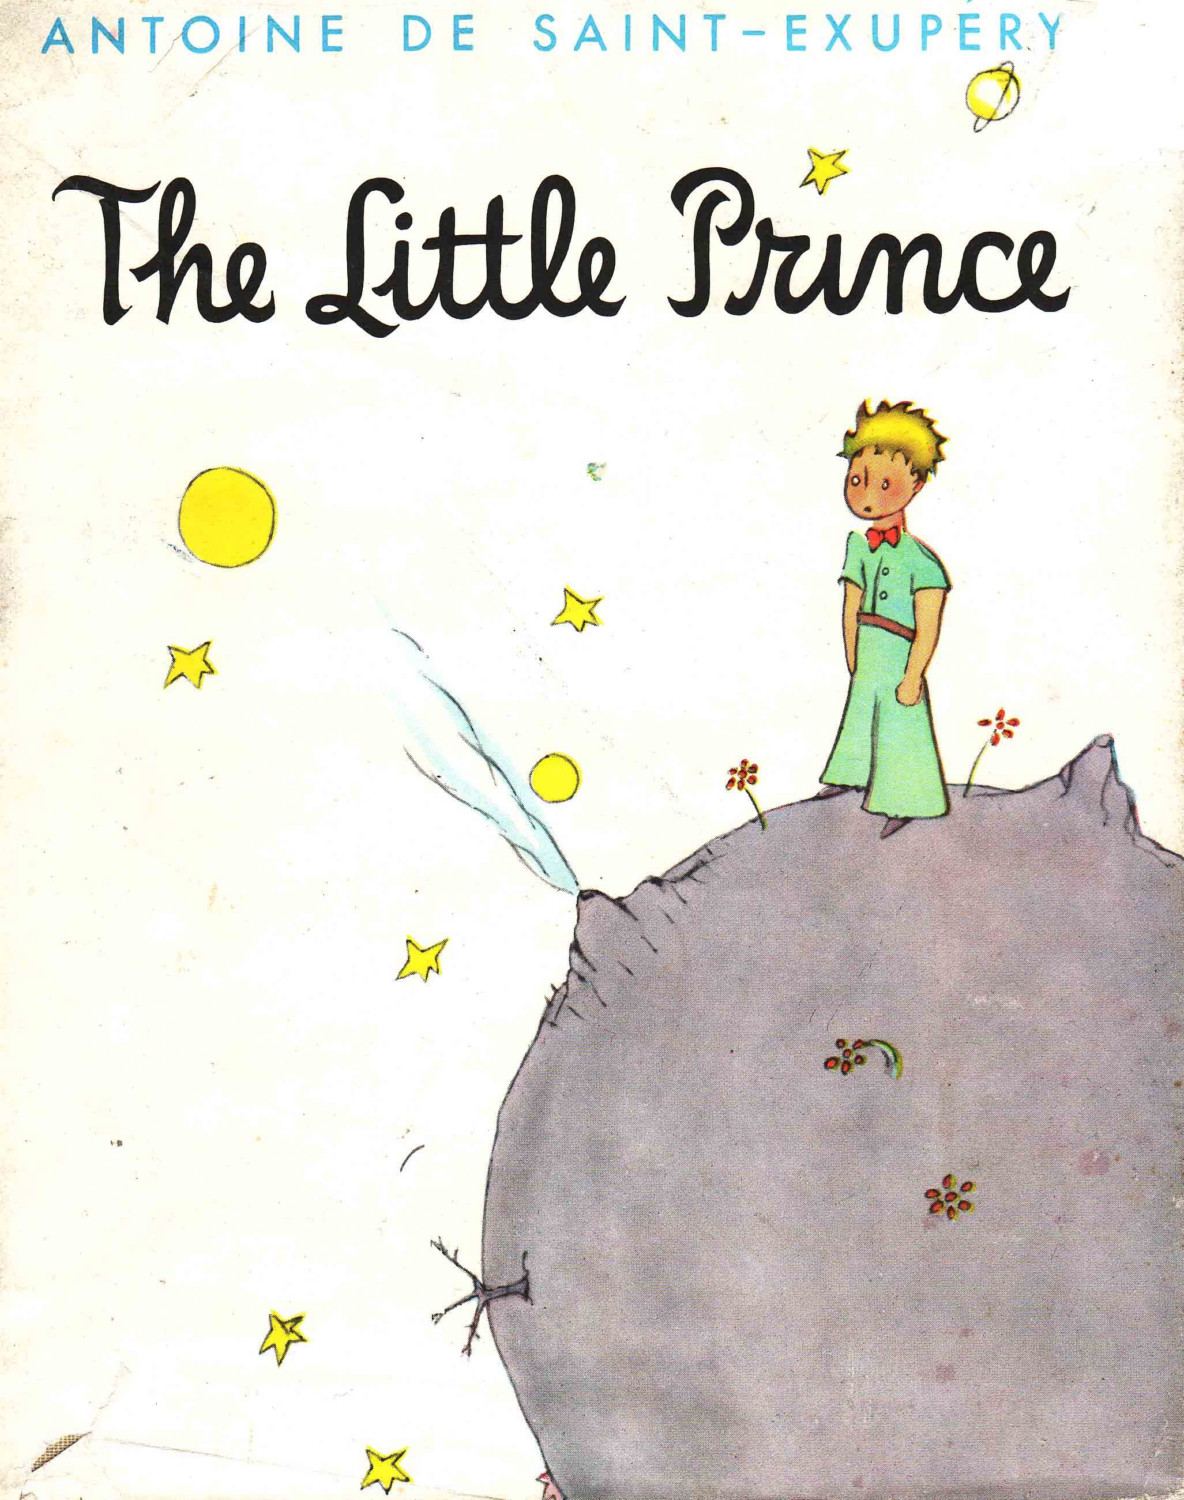 a literary analysis of the child within in the little prince by antoine de saint exupery